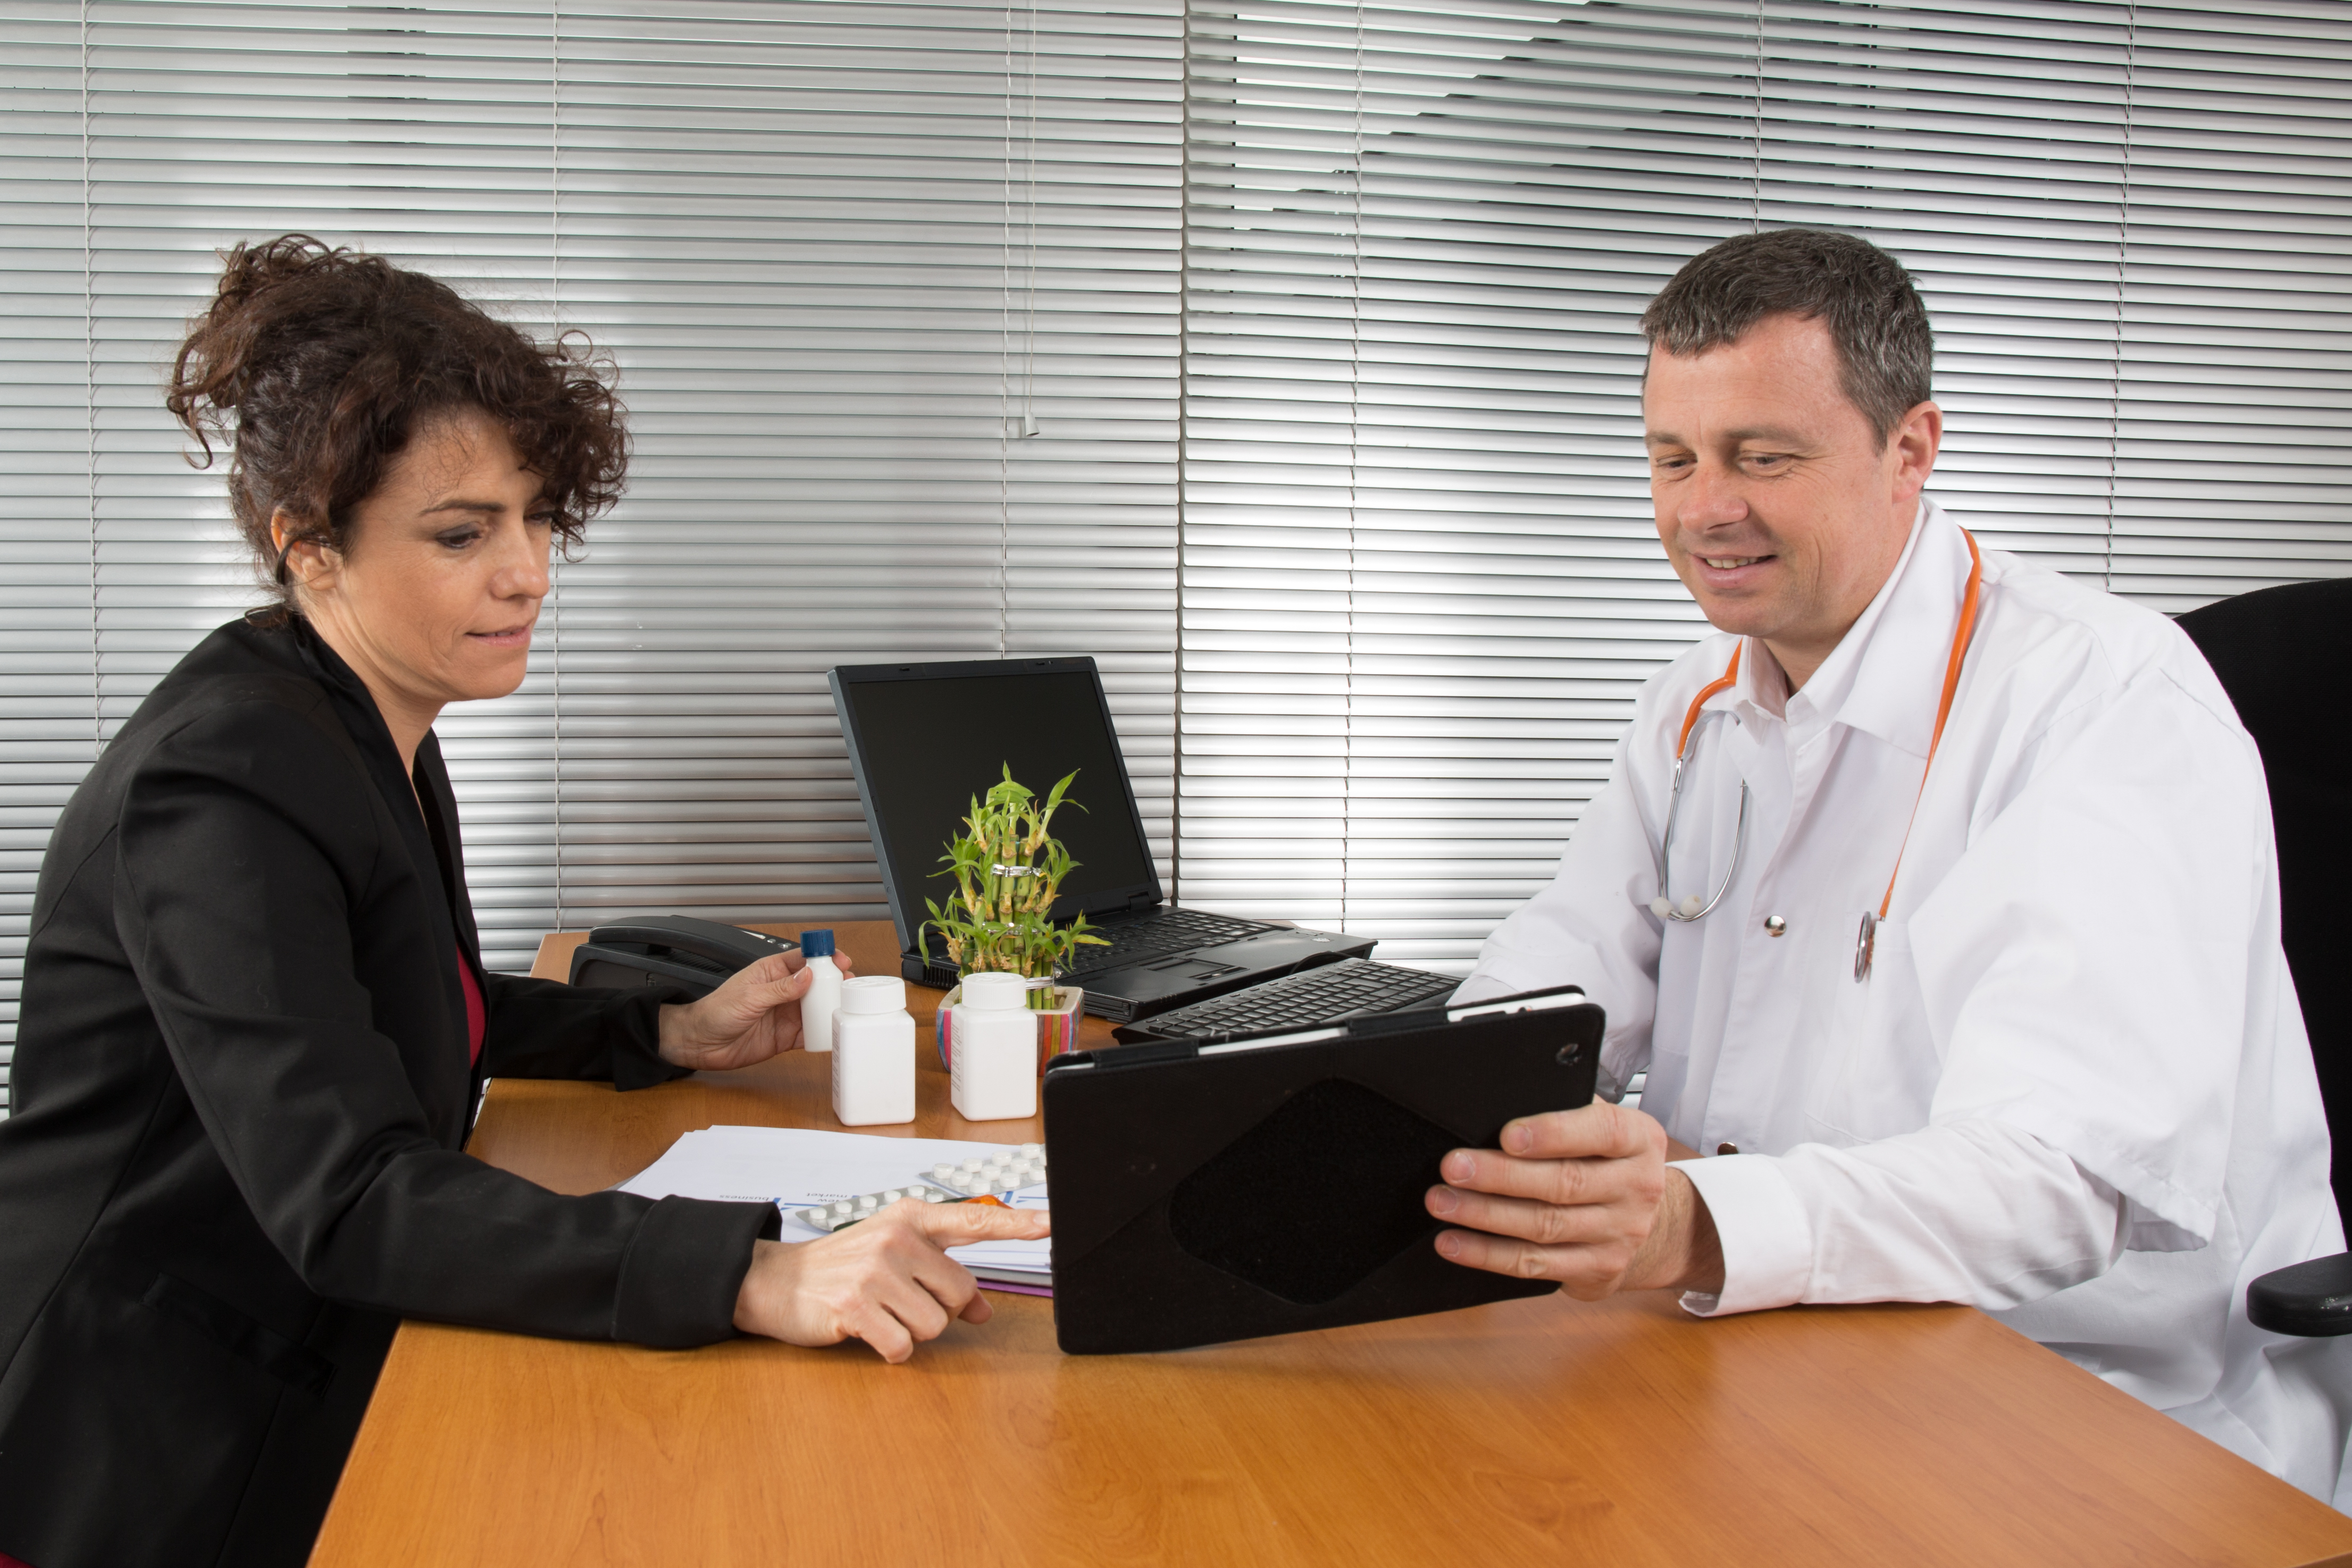 Rise Of Msls Medical Professionals Stand In For Sales